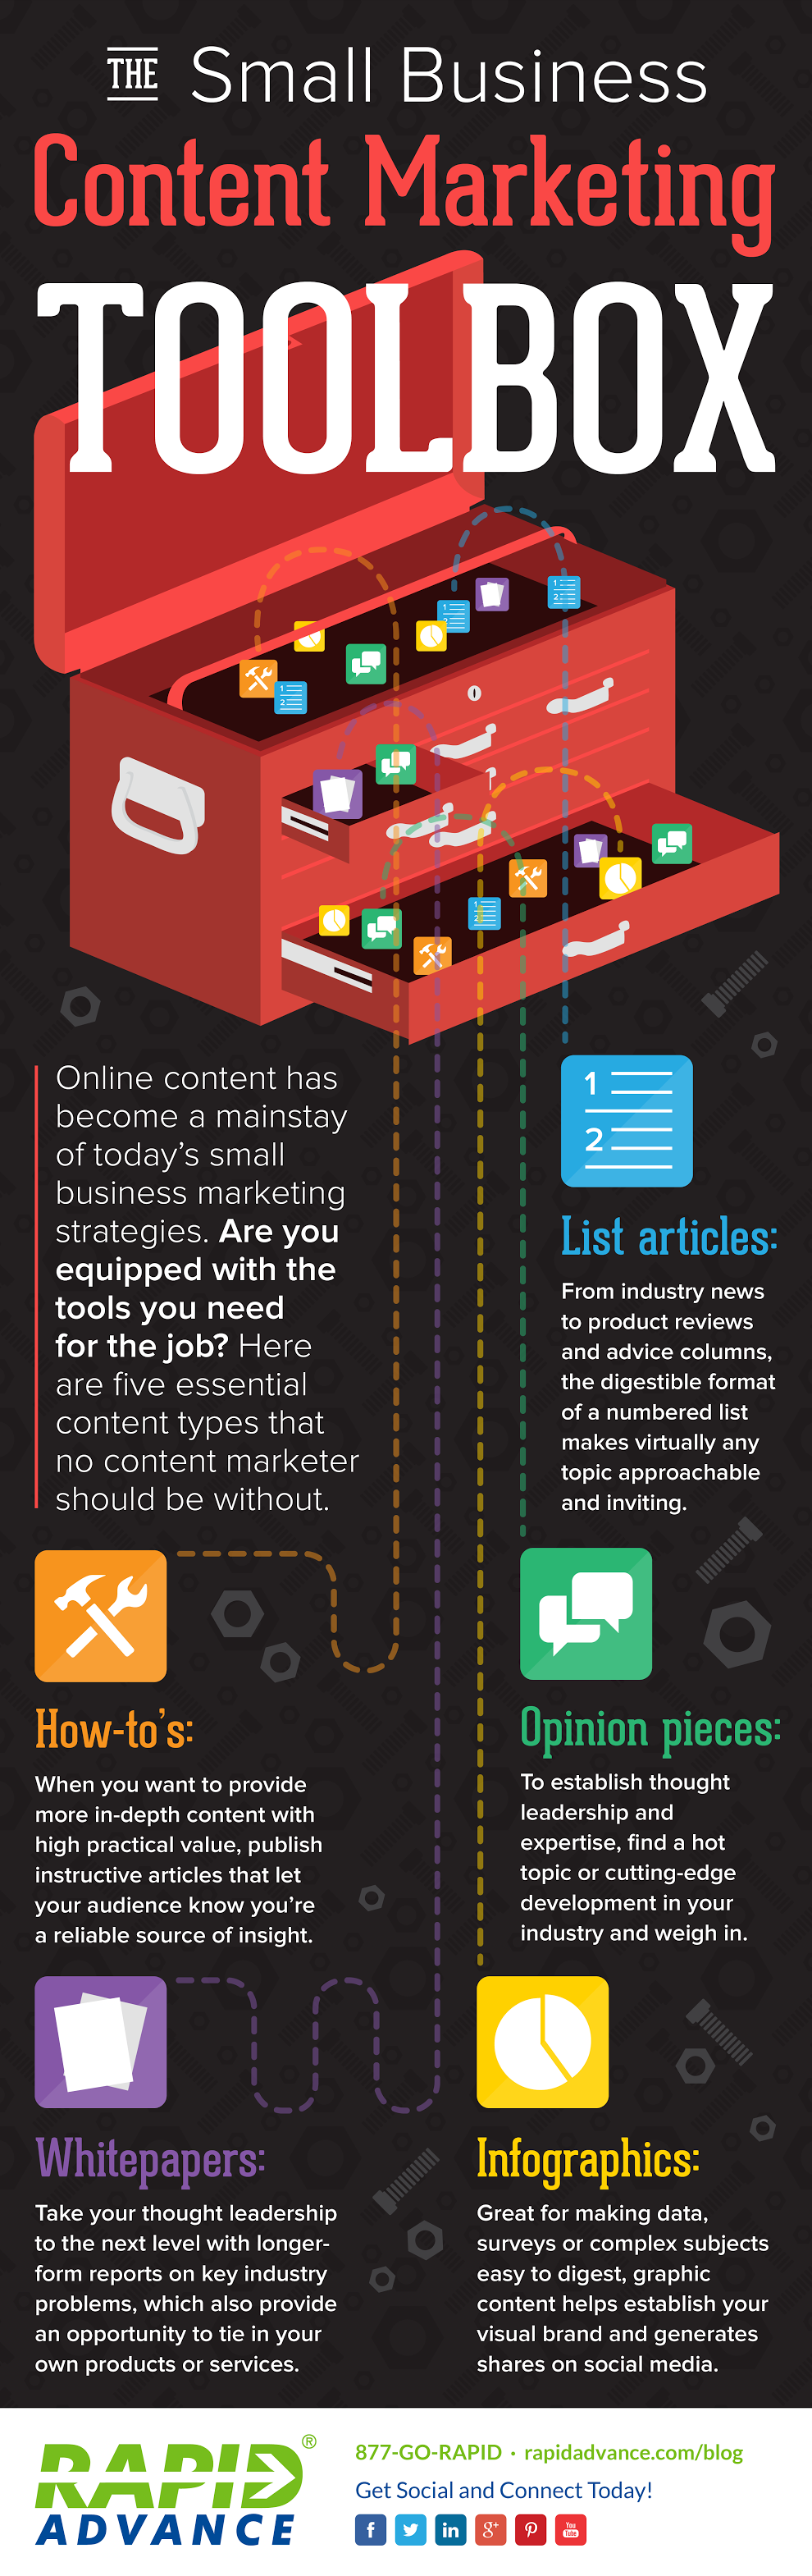 Infographic: The Small Business Content Marketing Toolbox